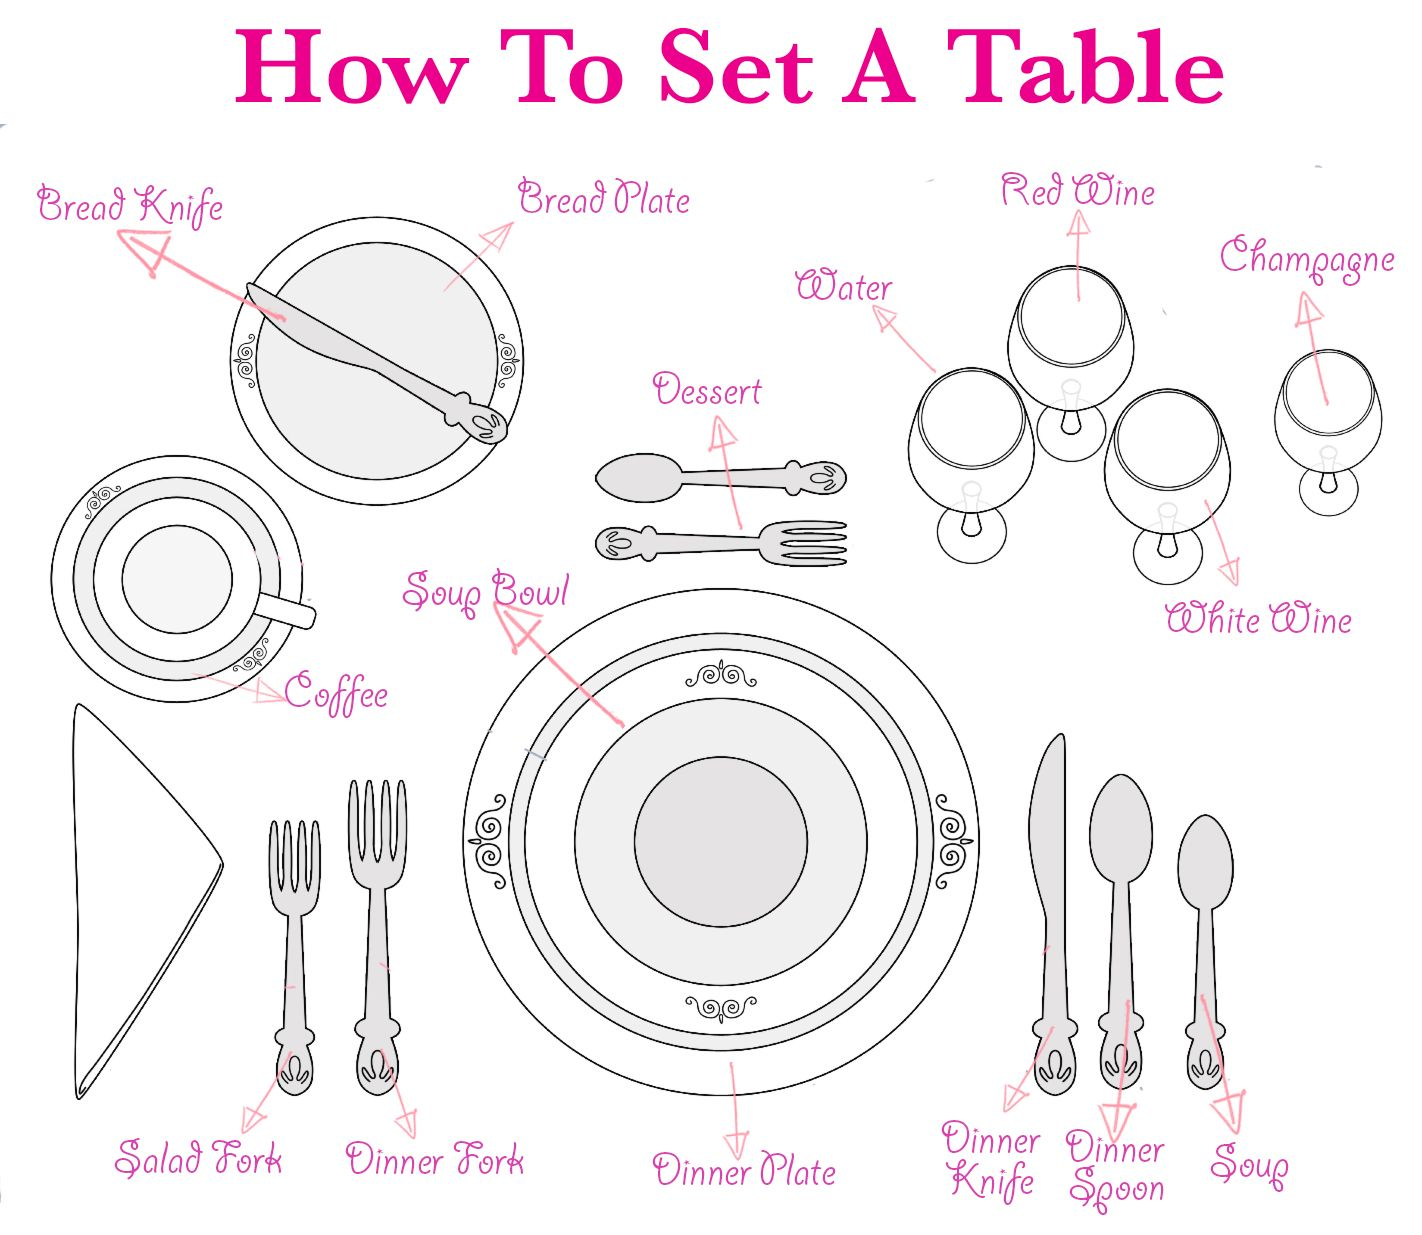 10 Gorgeous Table Setting Ideas How To Set Your Table Proper